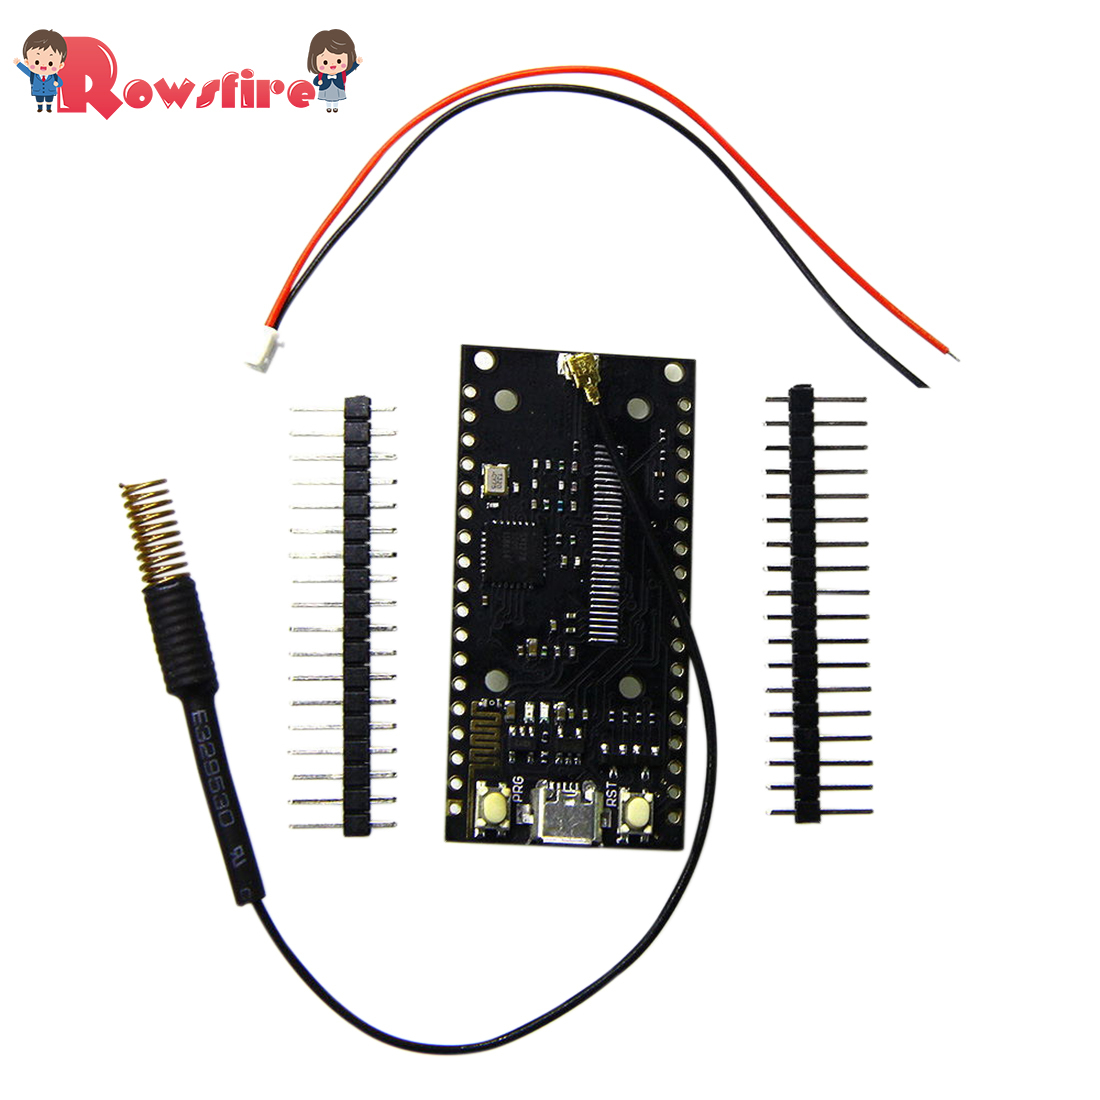 SX1278 LoRa 433MHz ESP32 Bluetooth WI-FI LoRa Internet Module With Antenna For Arduino